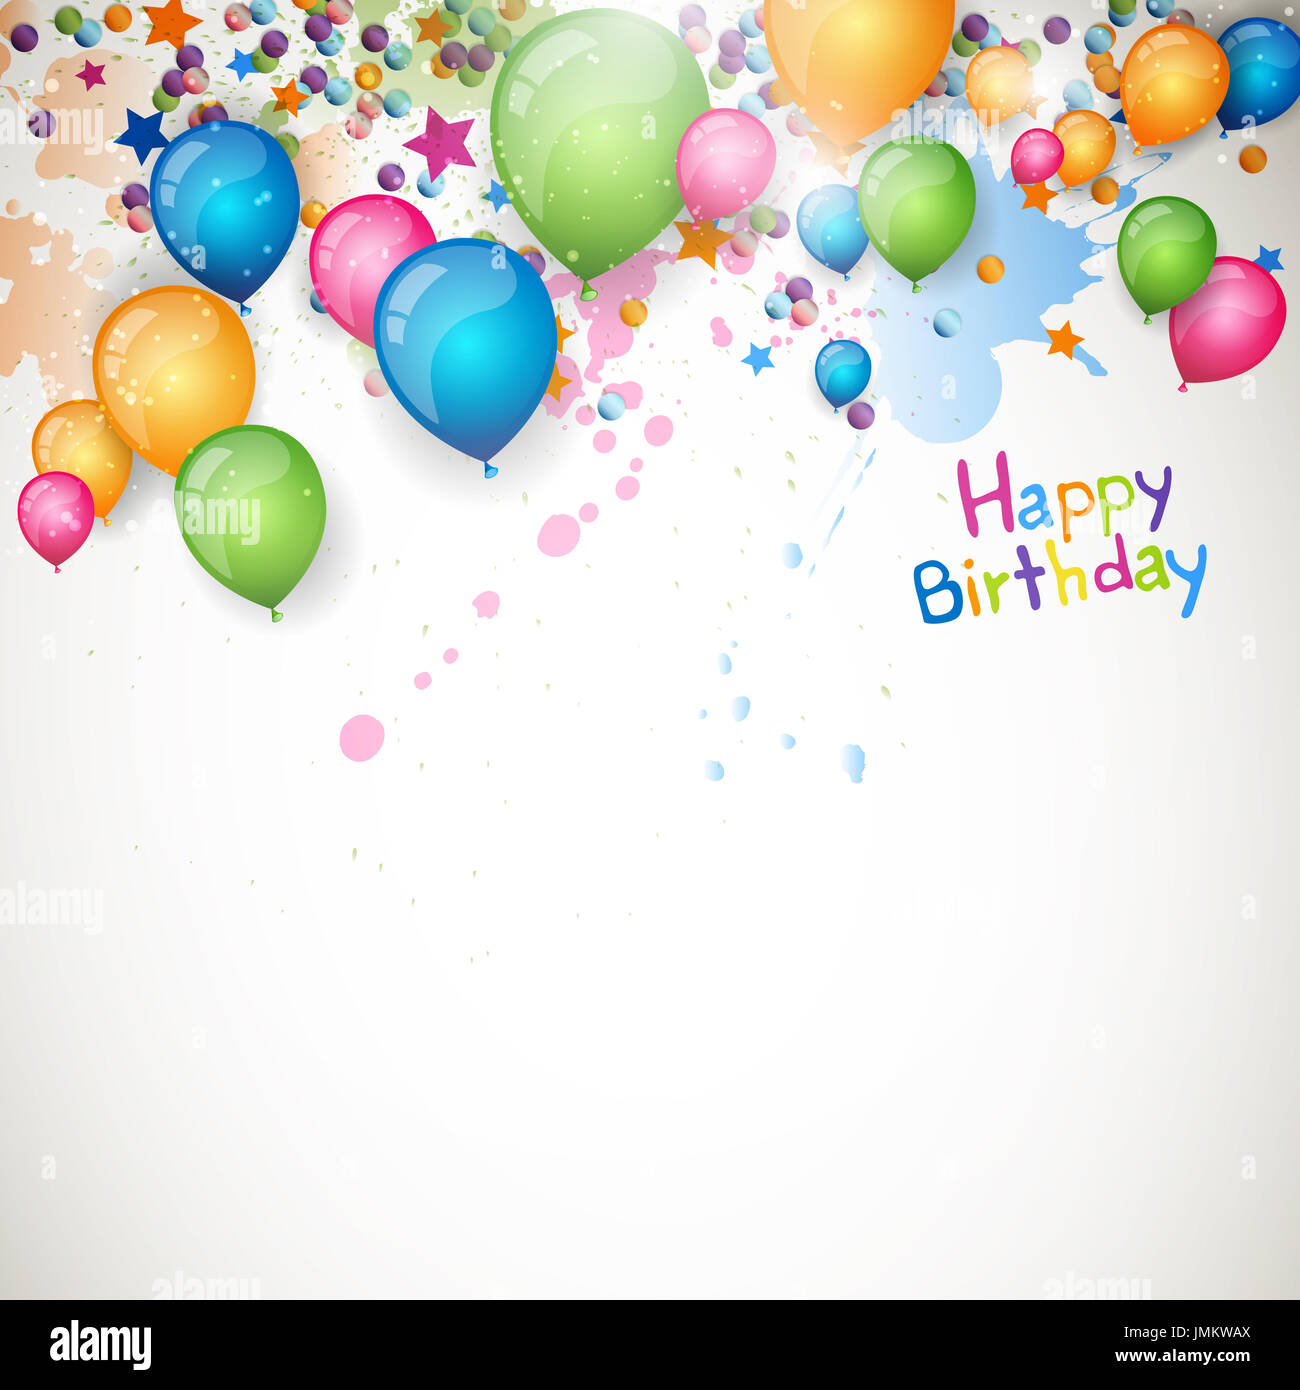 Happy Birthday Greeting Card Background Vector Illustration Stock